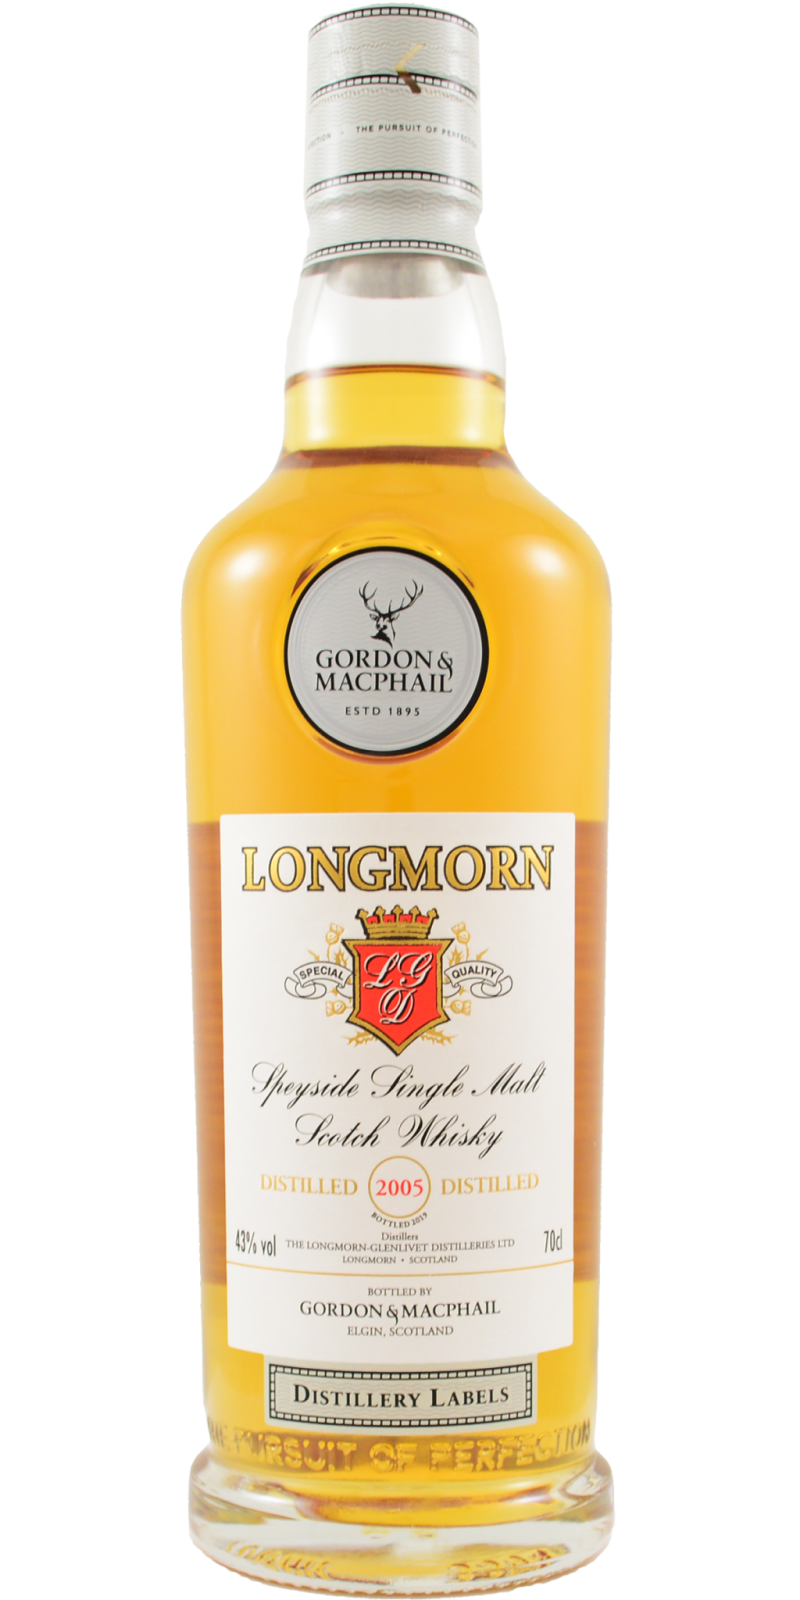 Gordon & Macphail Distillery Label Longmorn 2005 0,7L